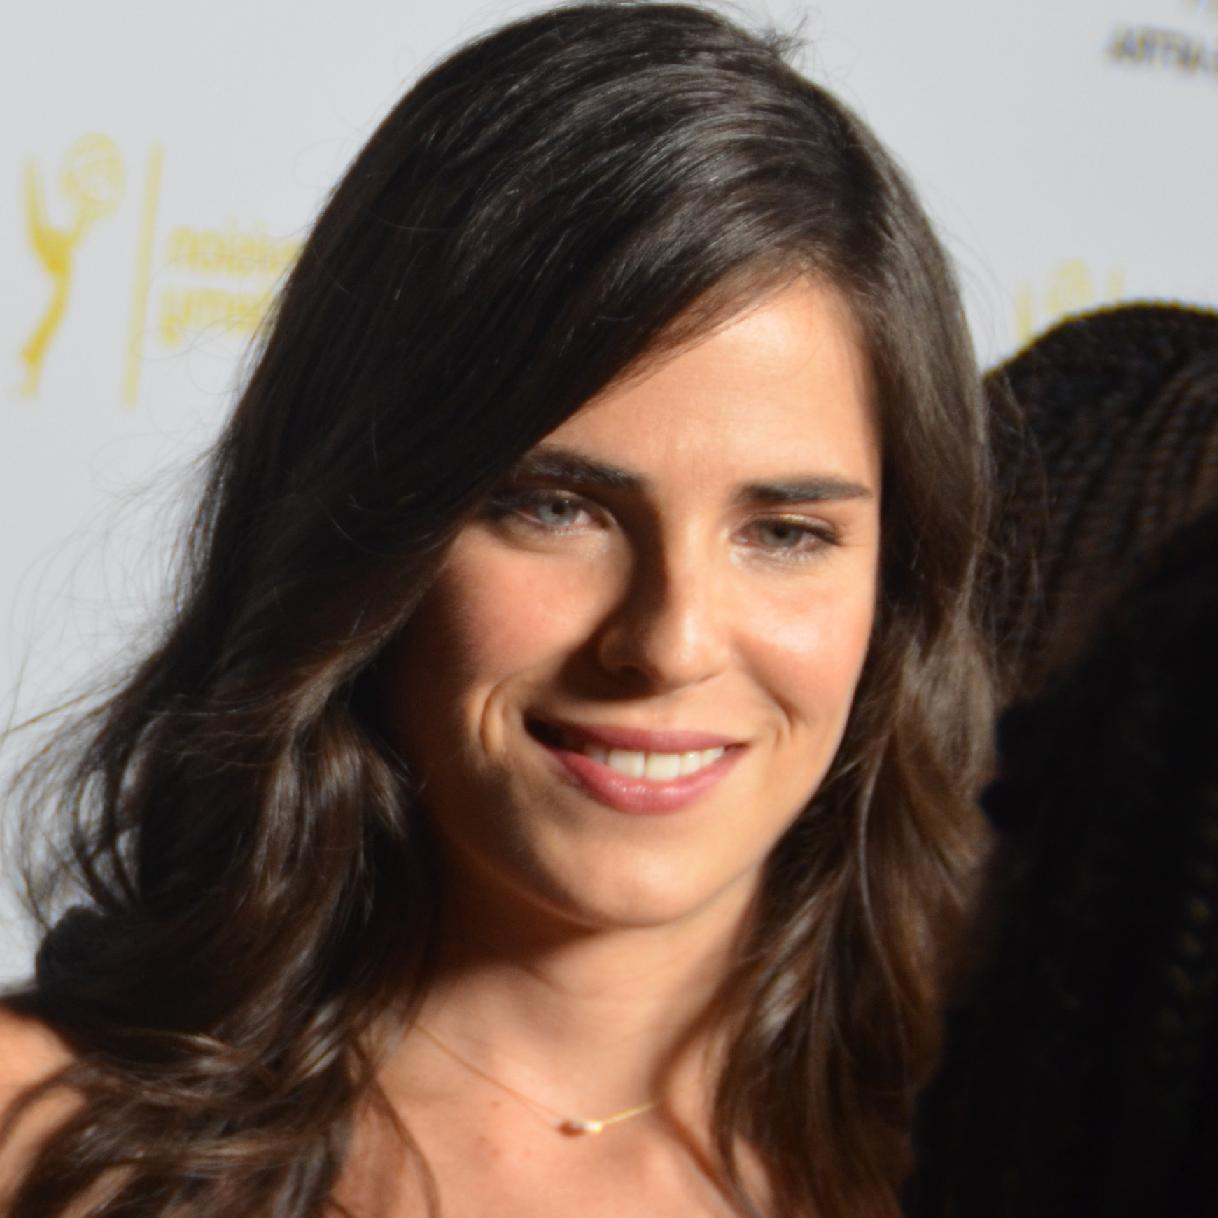 Communication on this topic: Marianne Miller, karla-souza/